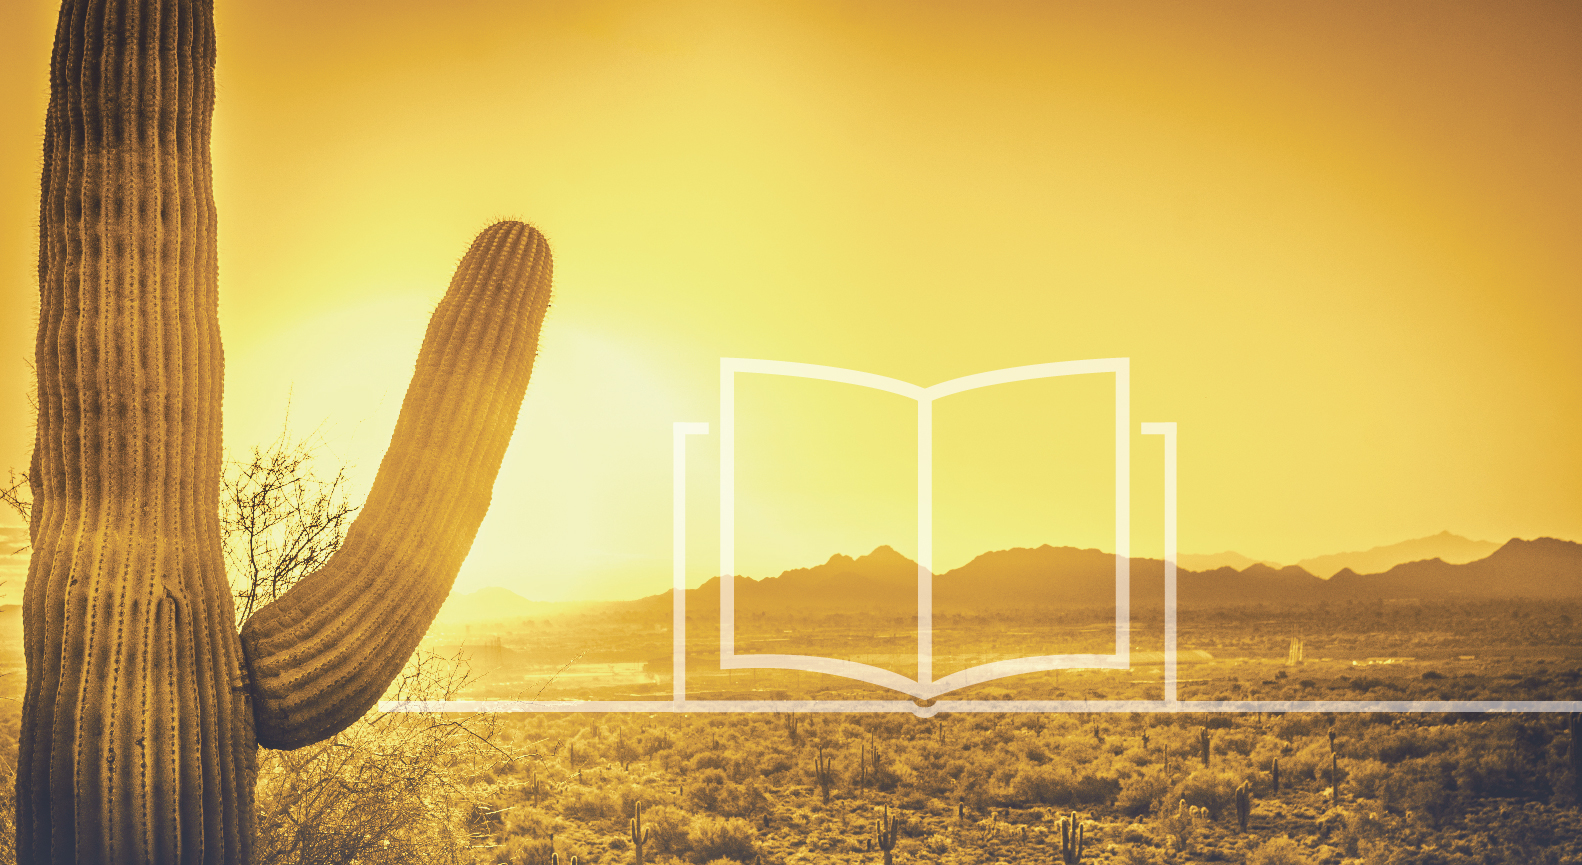 faint illustrated book floating over the desert next to a saguaro cactus